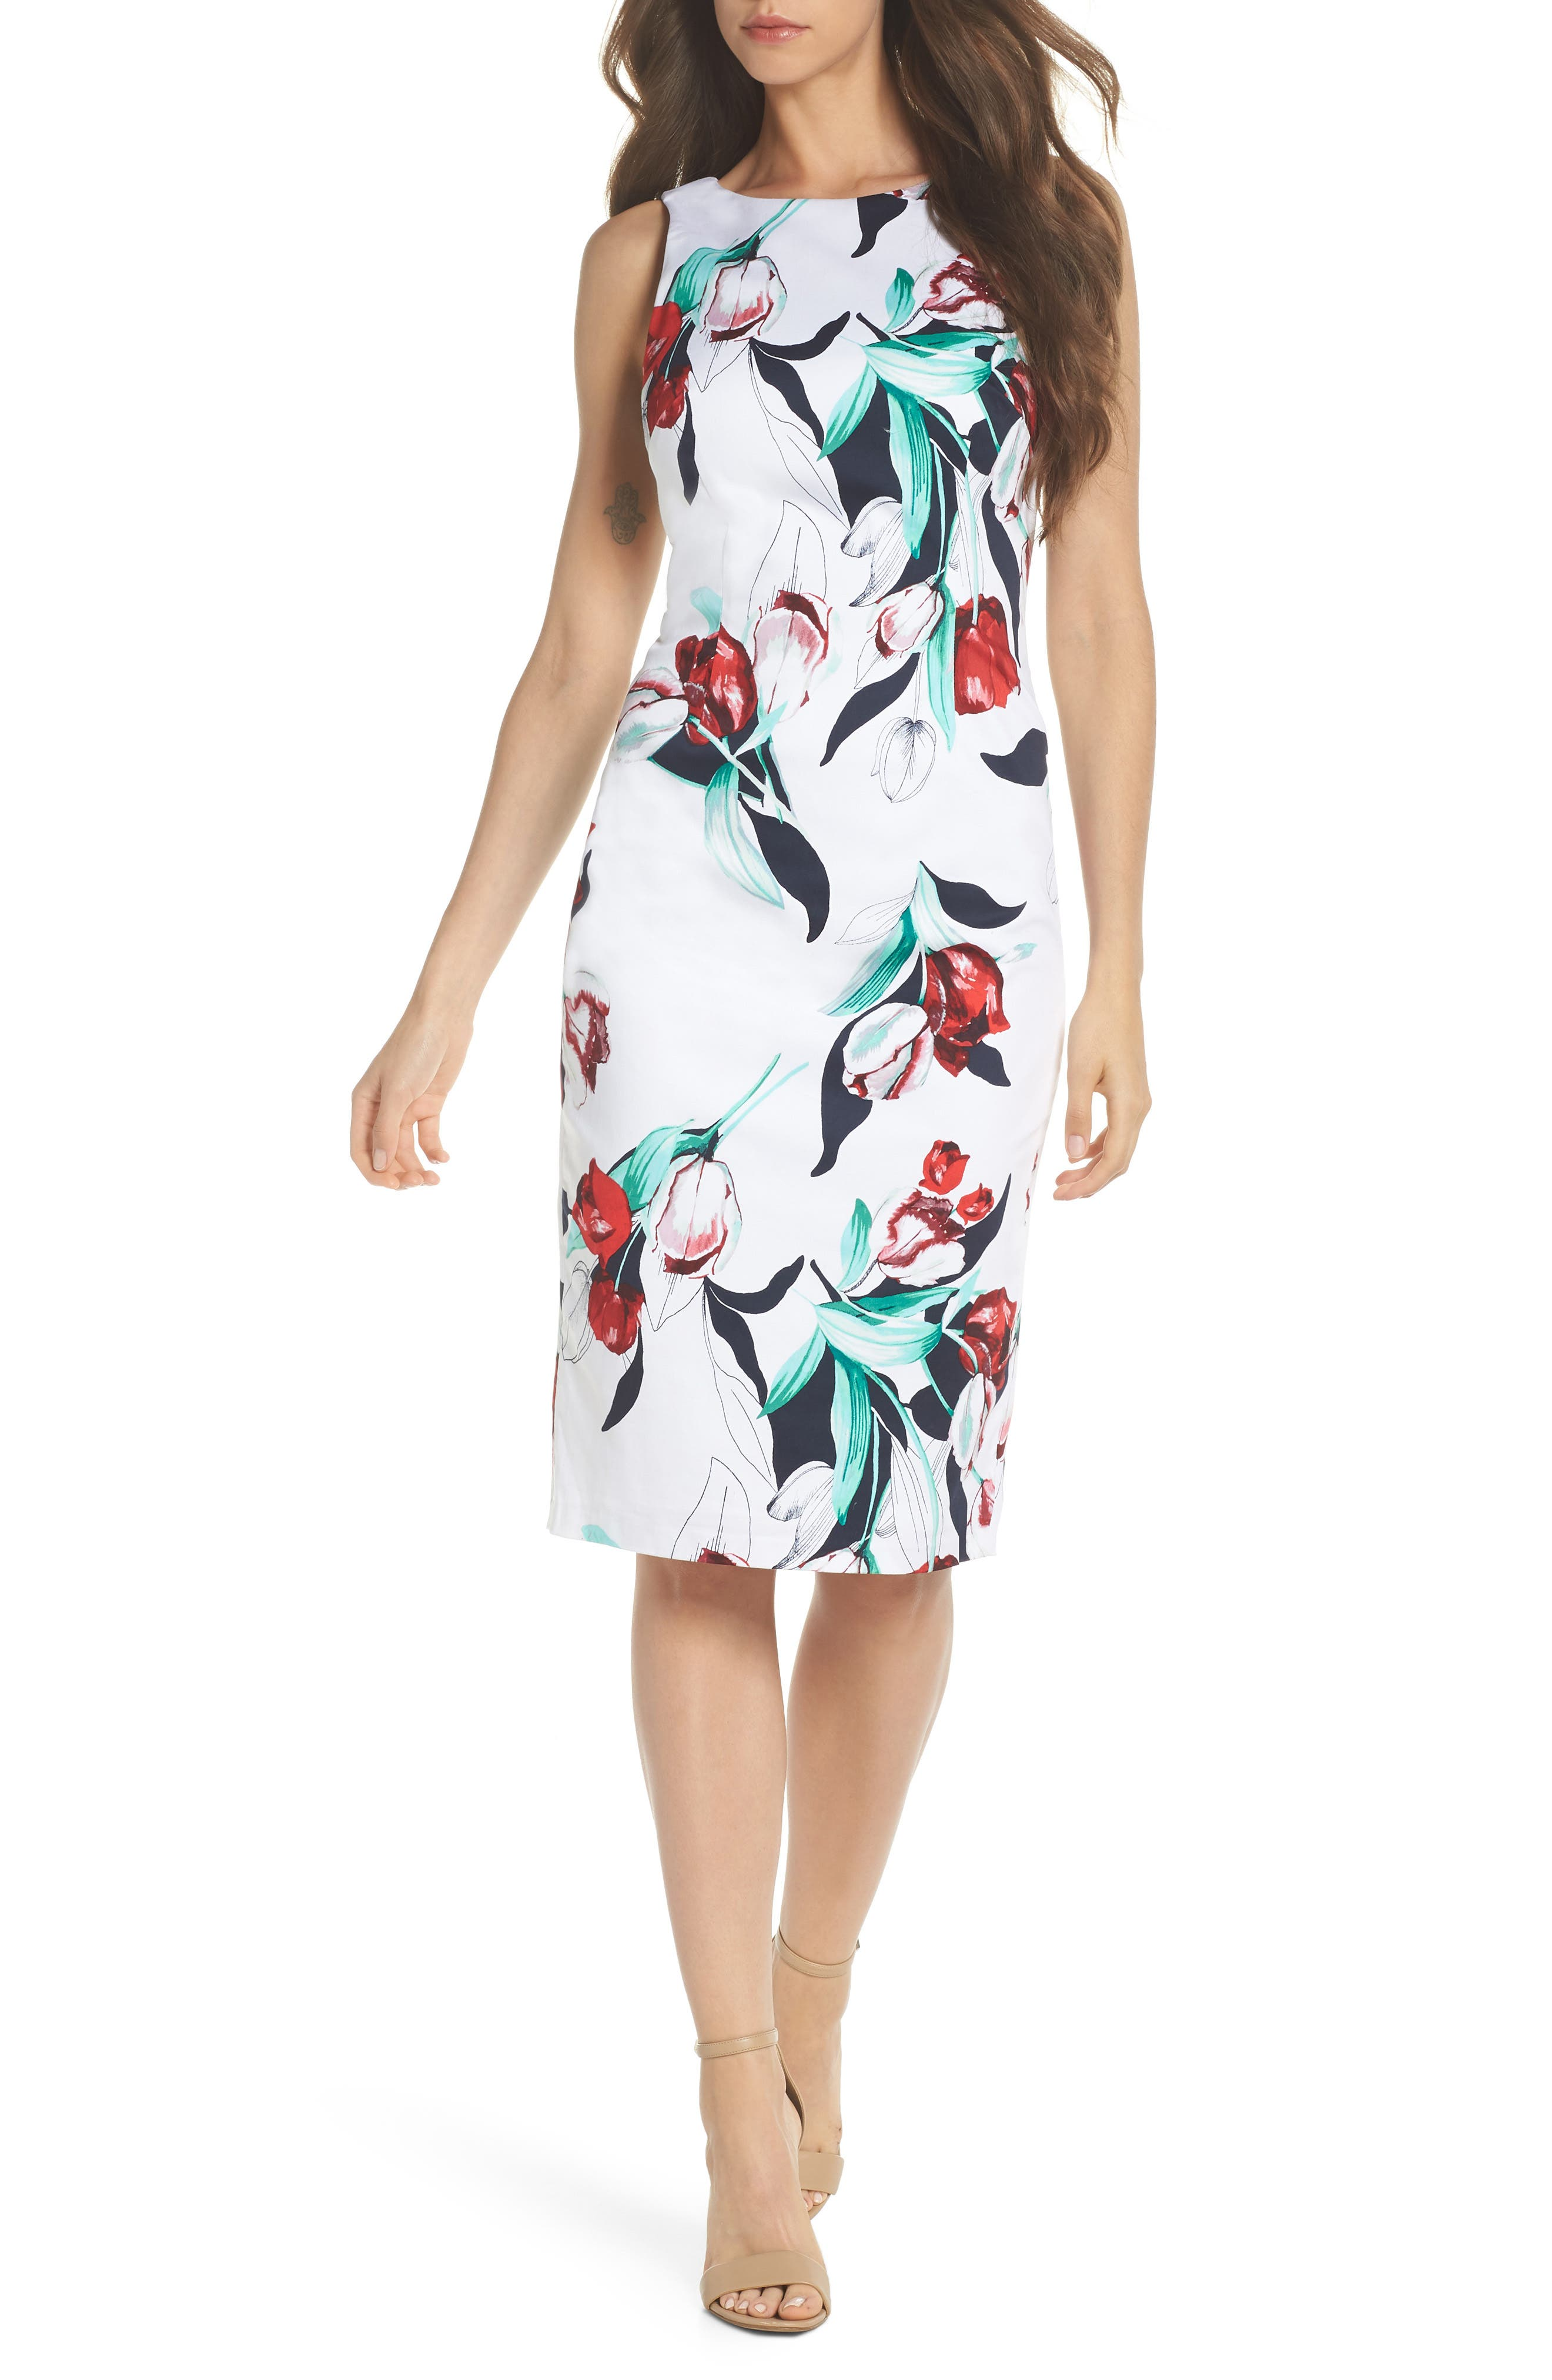 Dynasty Floral Print Stretch Sheath Dress,                             Main thumbnail 1, color,                             607